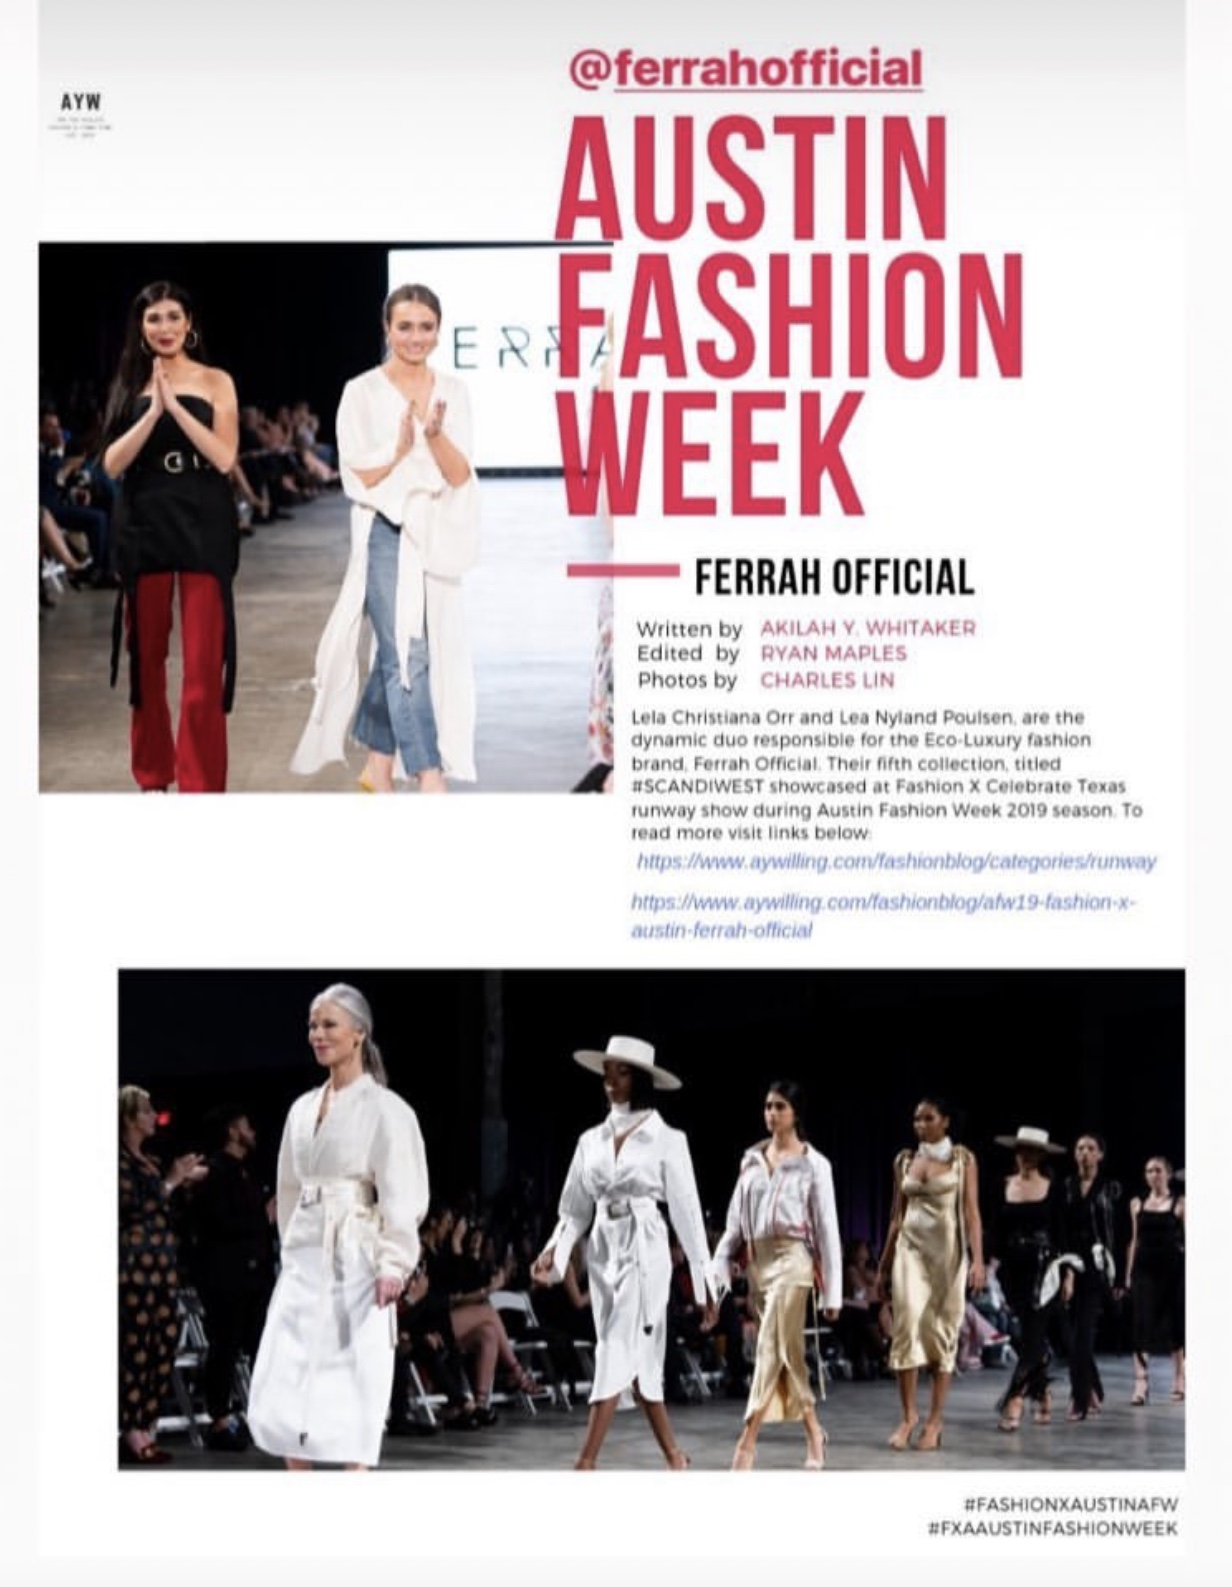 Recap on Austin Fashion Week, where collection V of Ferrah was showcased in February 2019.